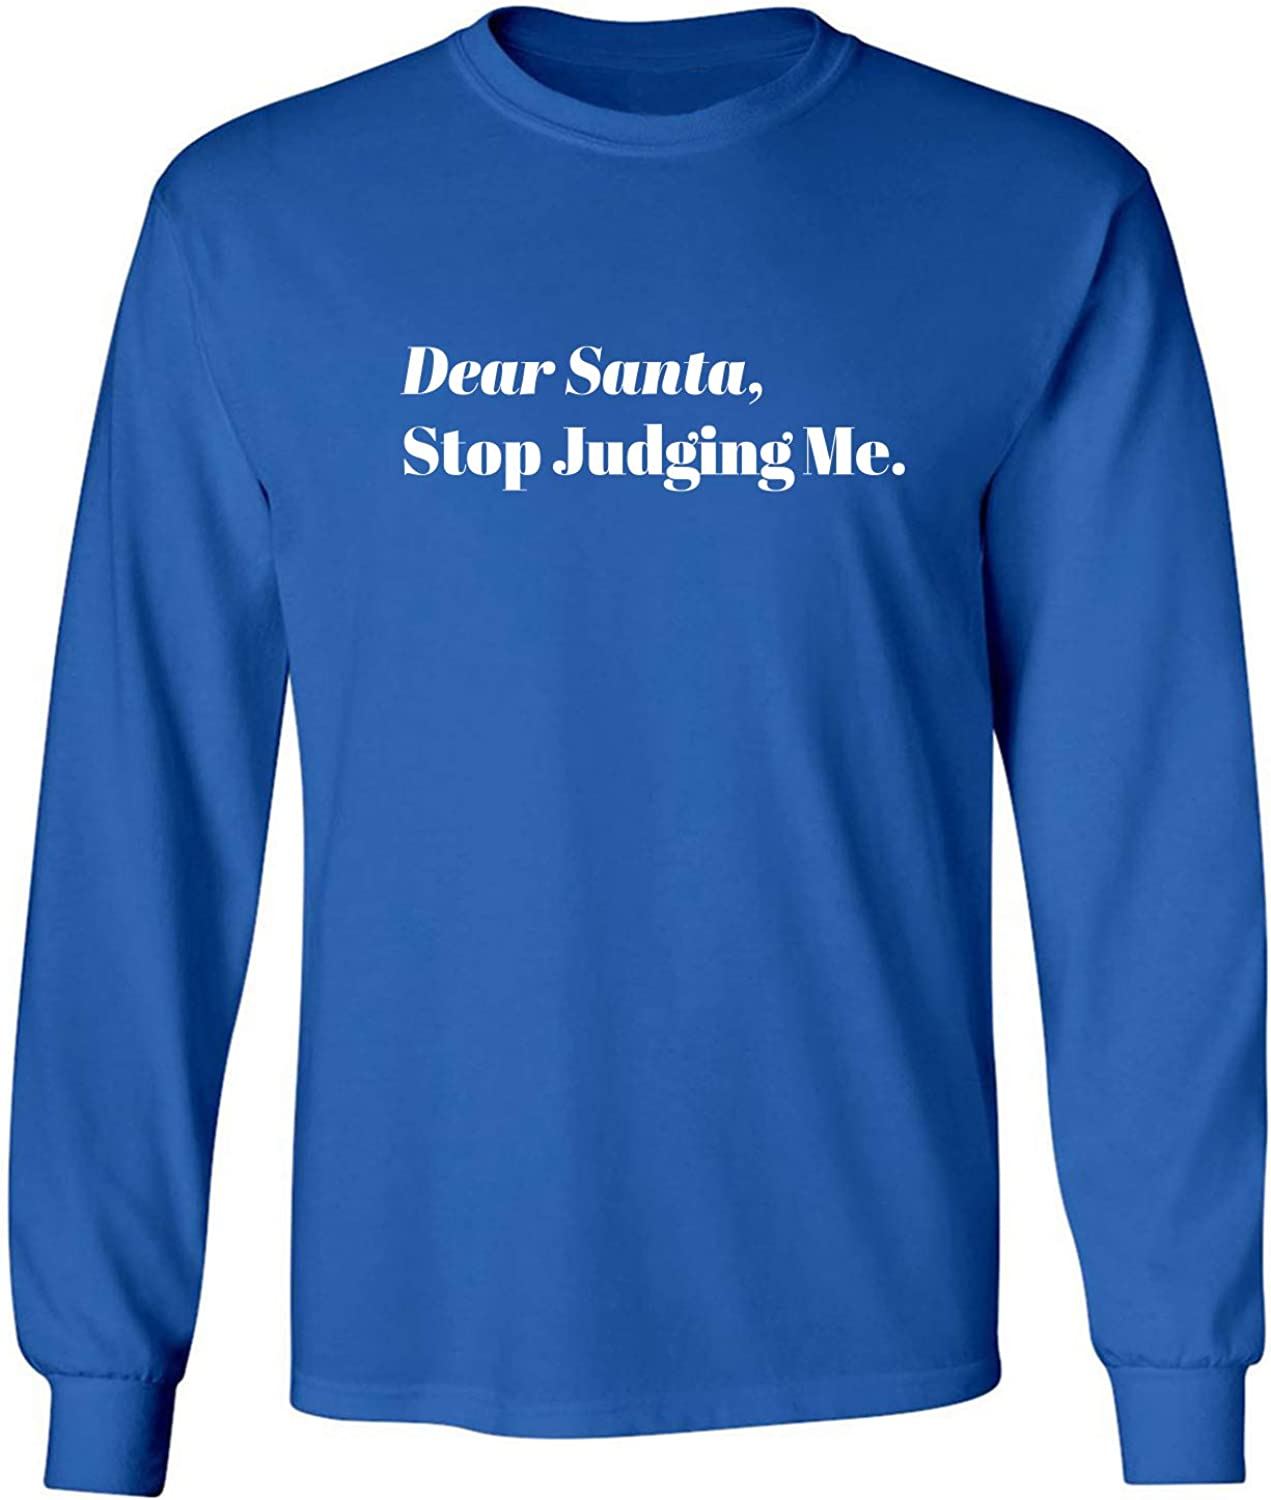 Dear Santa, Stop Judging Me. Adult Long Sleeve T-Shirt in Royal - XXXX-Large